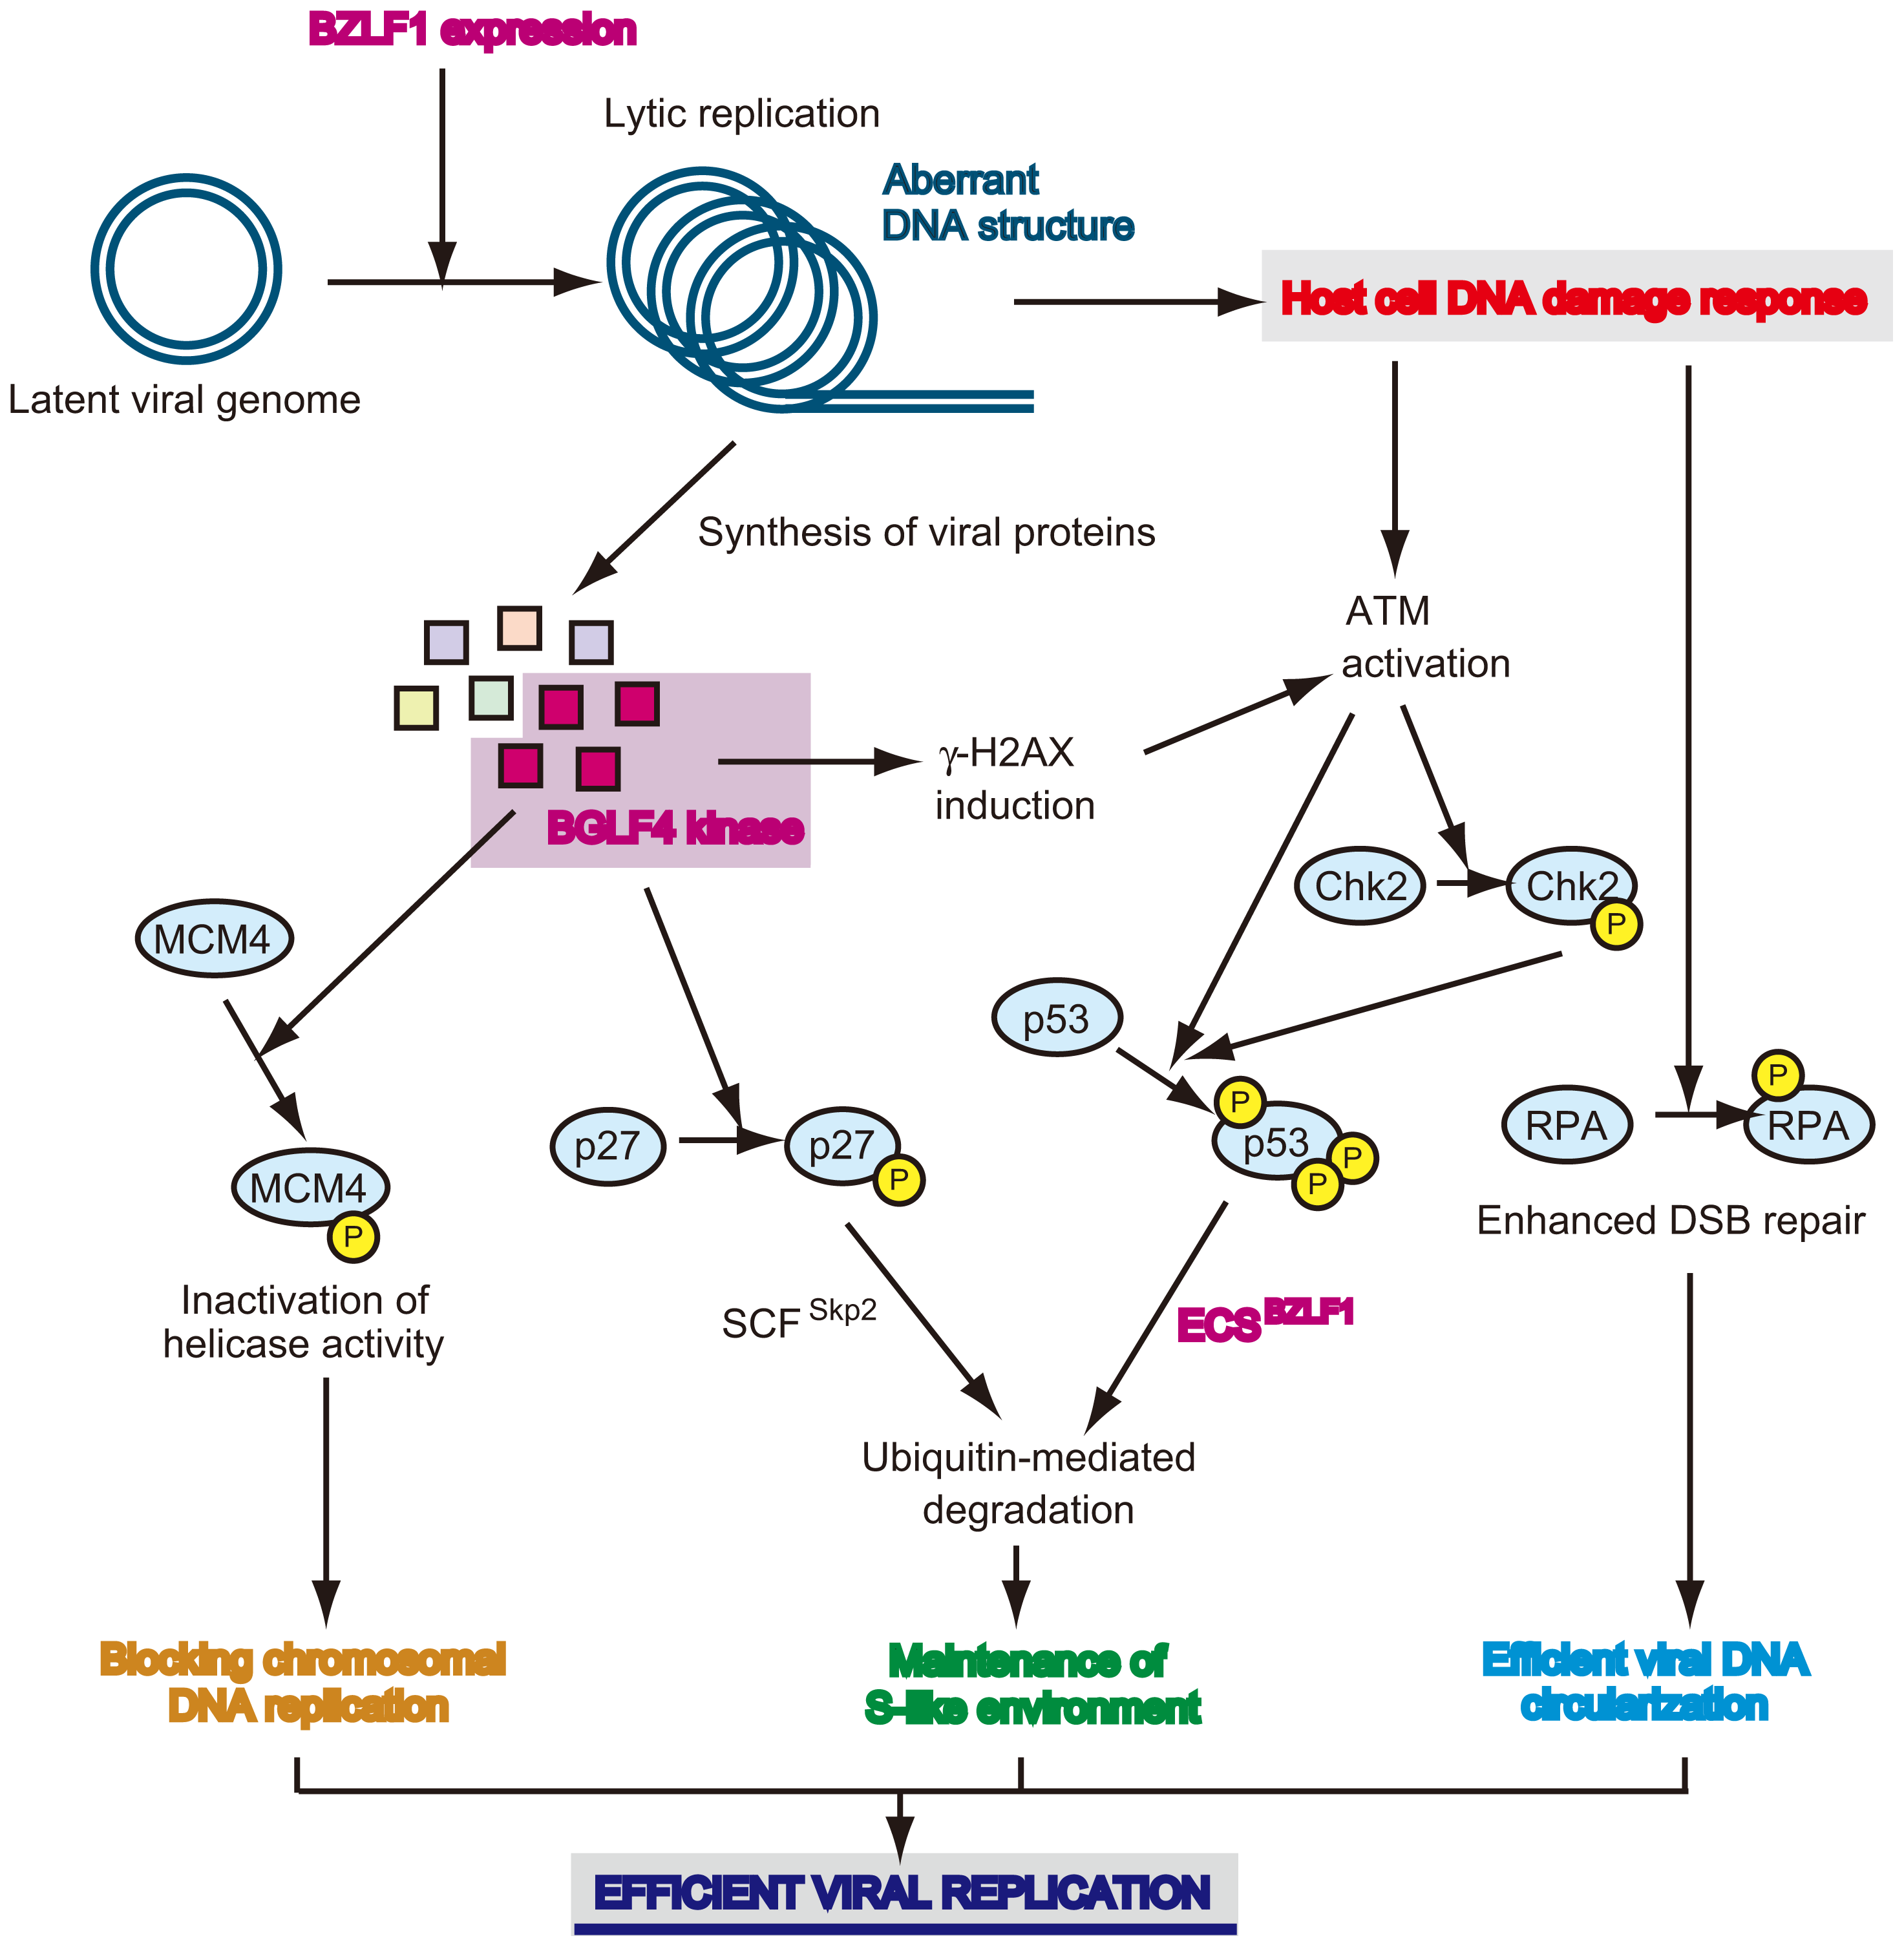 Viral strategy to manipulate the cellular environment for its own genome replication.